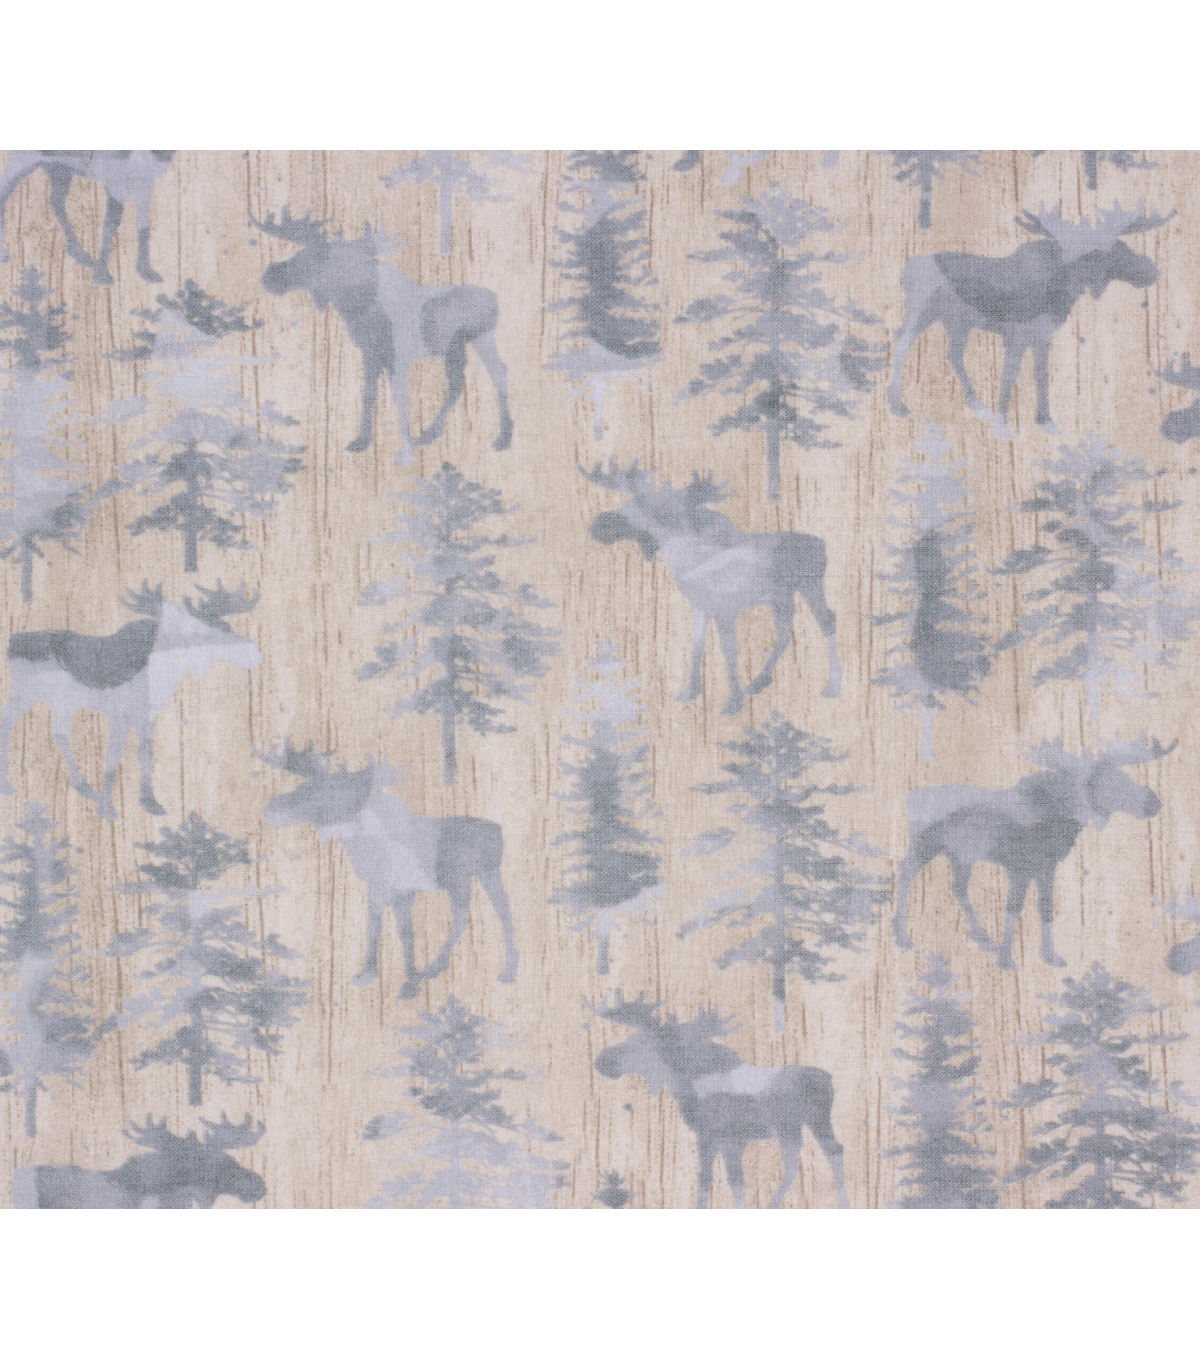 Super Snuggle Flannel Fabric-Textured Moose on Wood